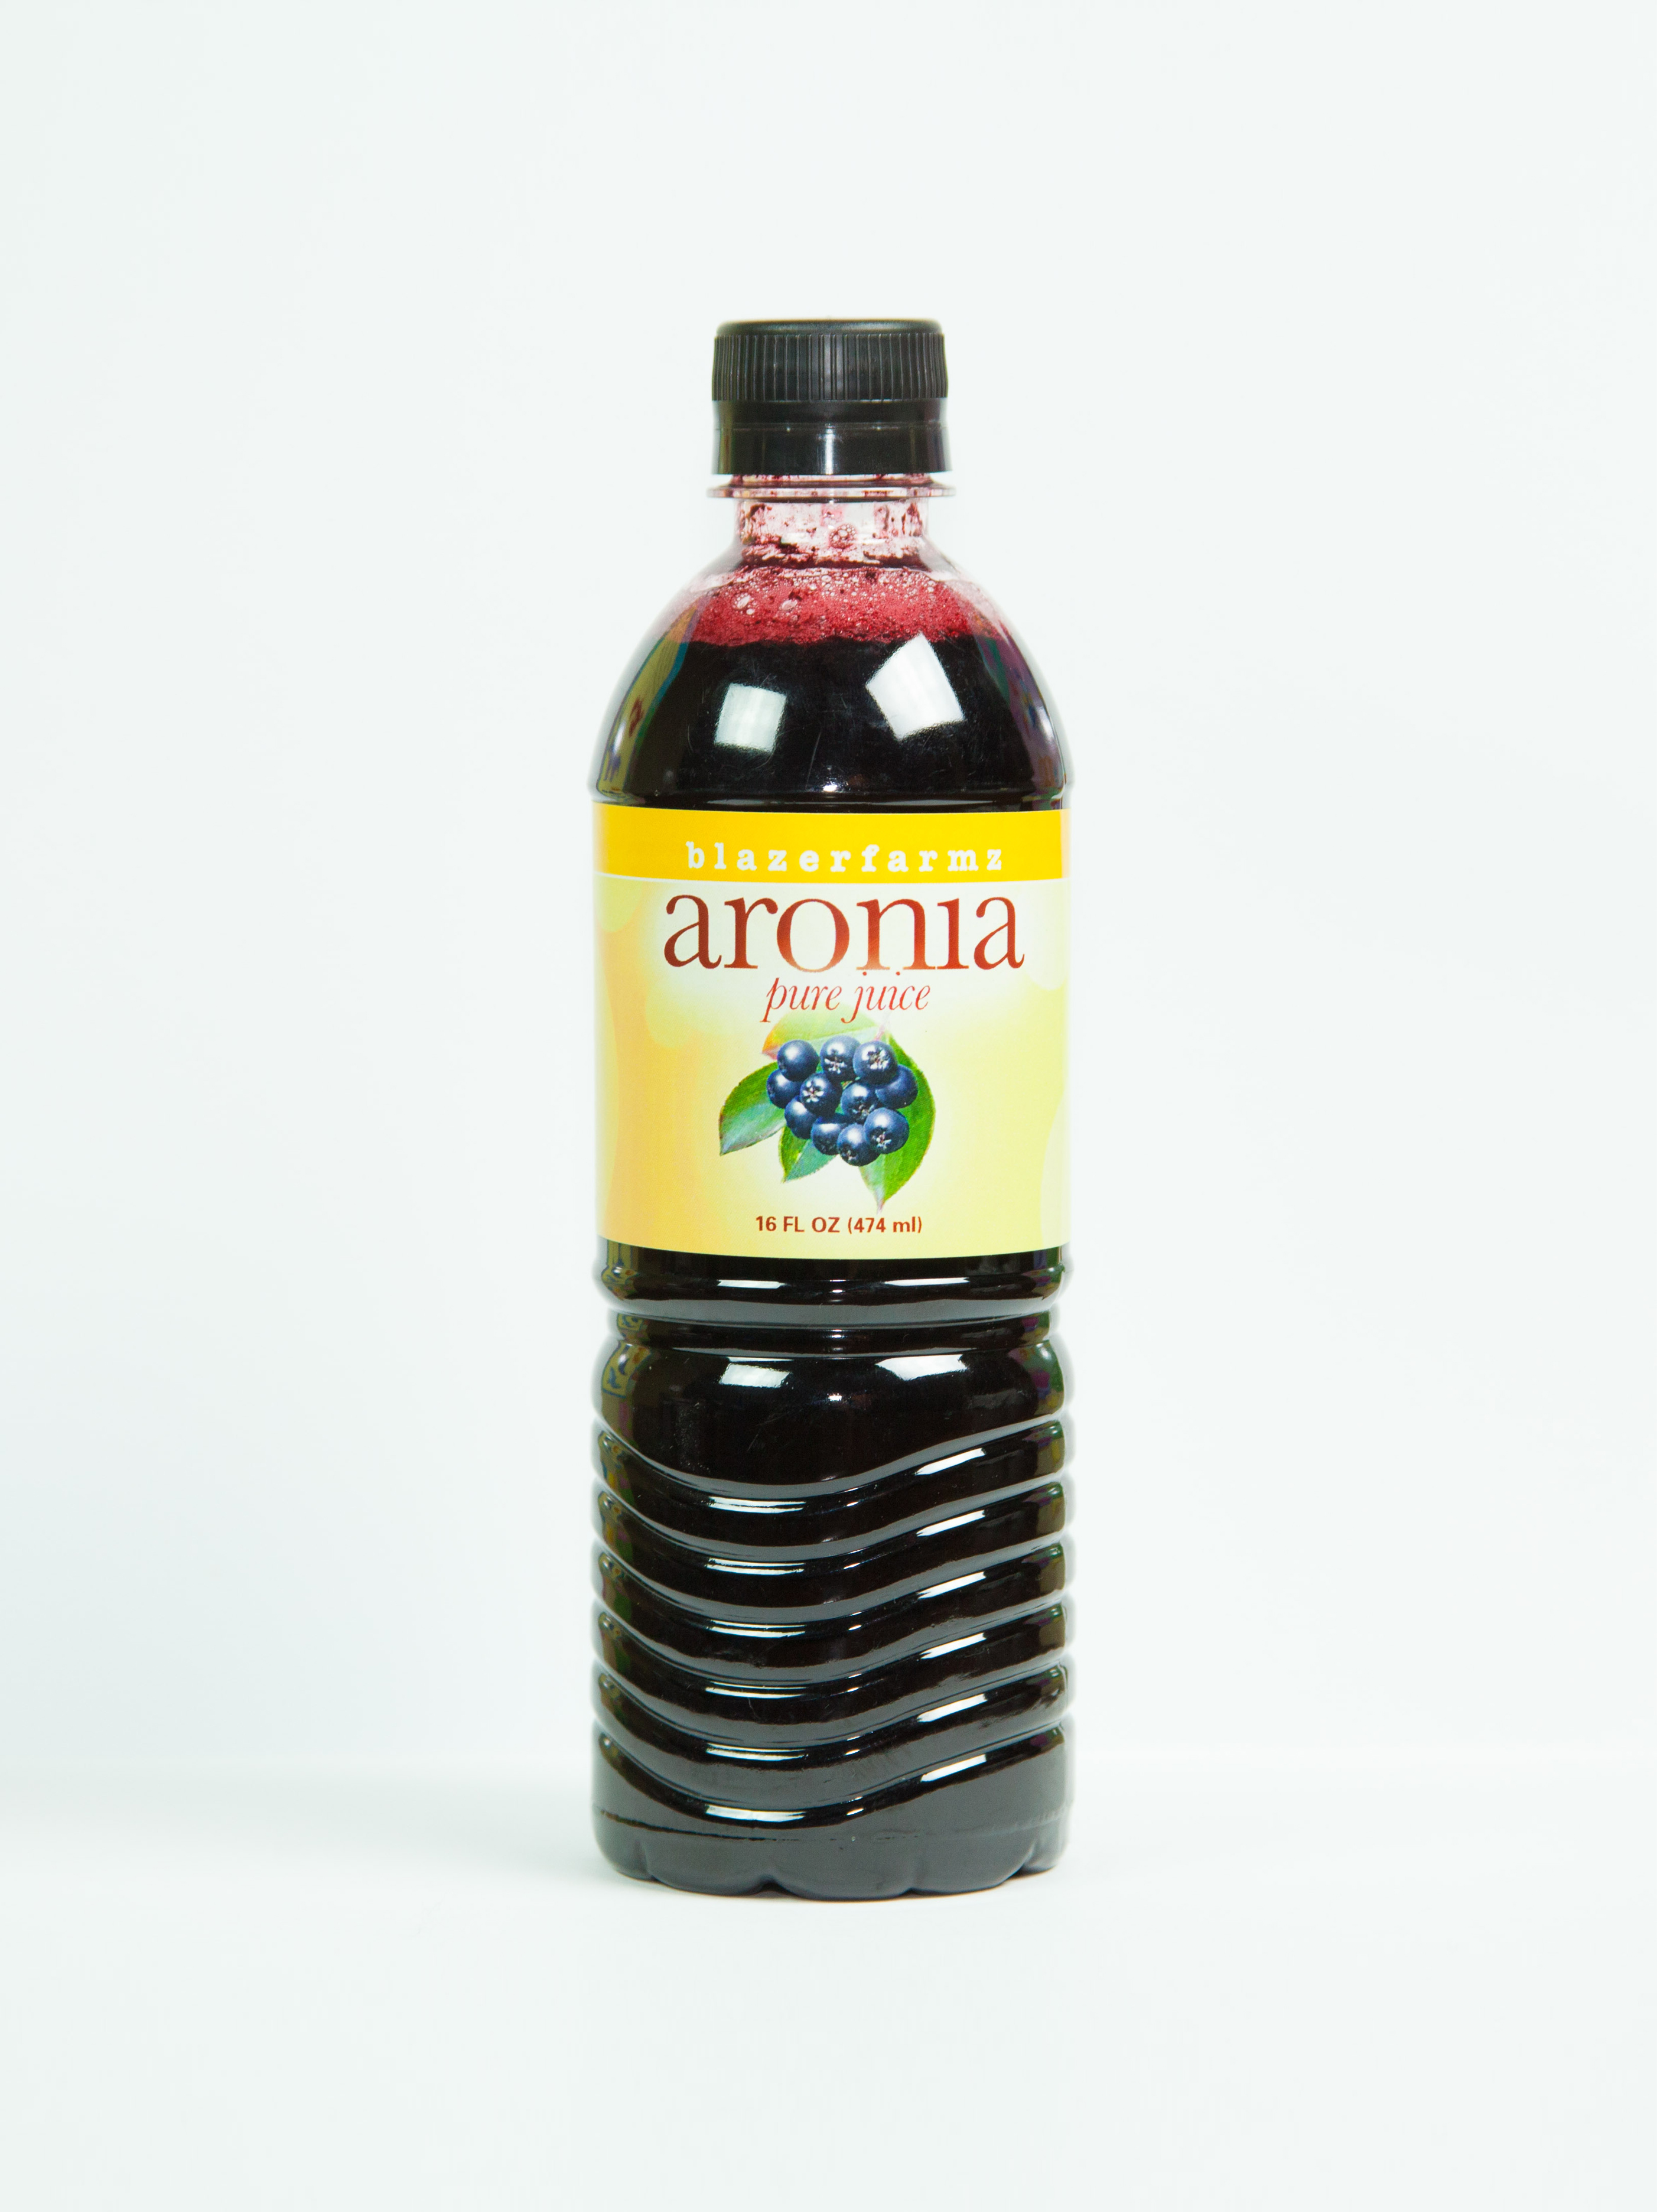 Aroniaberry Cold-Pressed Juice